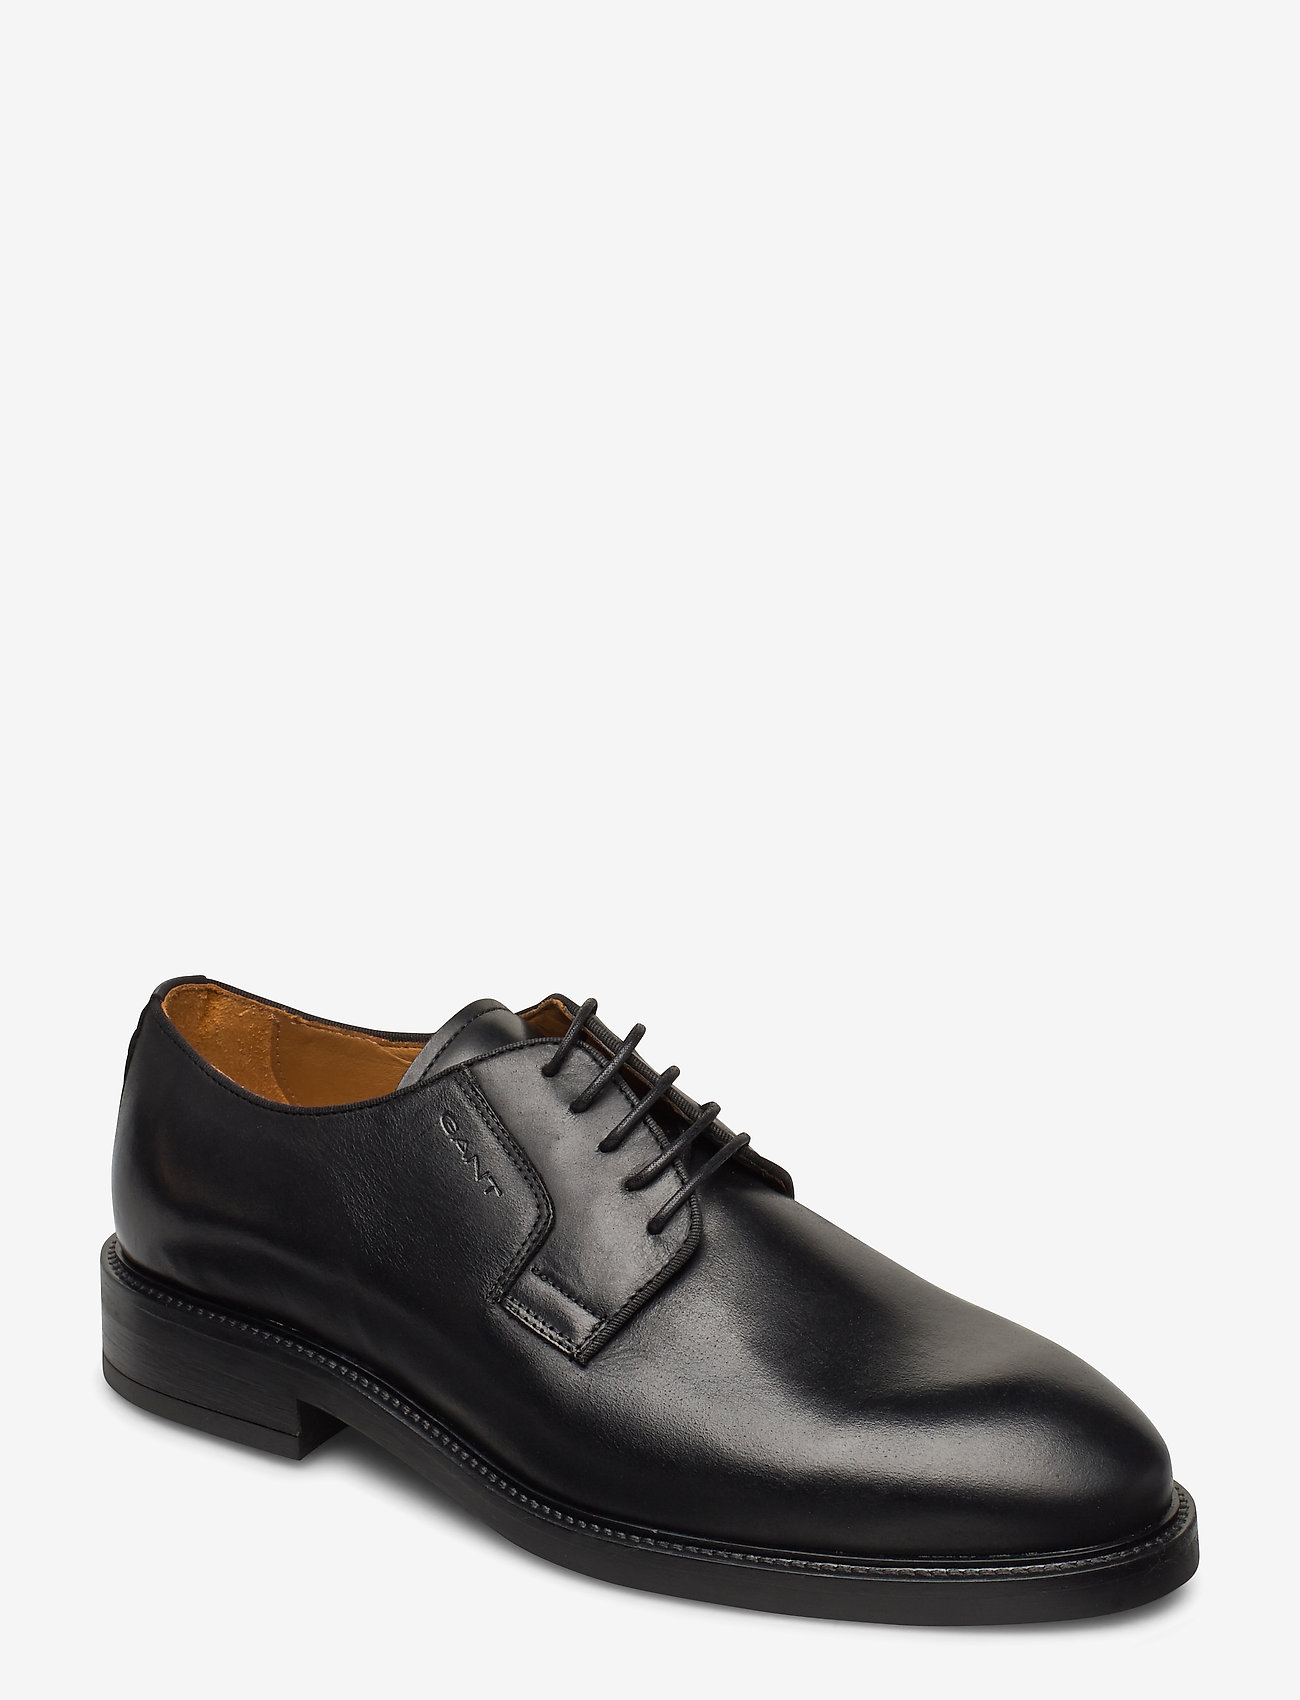 GANT - Flairville Low laceshoes - laced shoes - black - 0